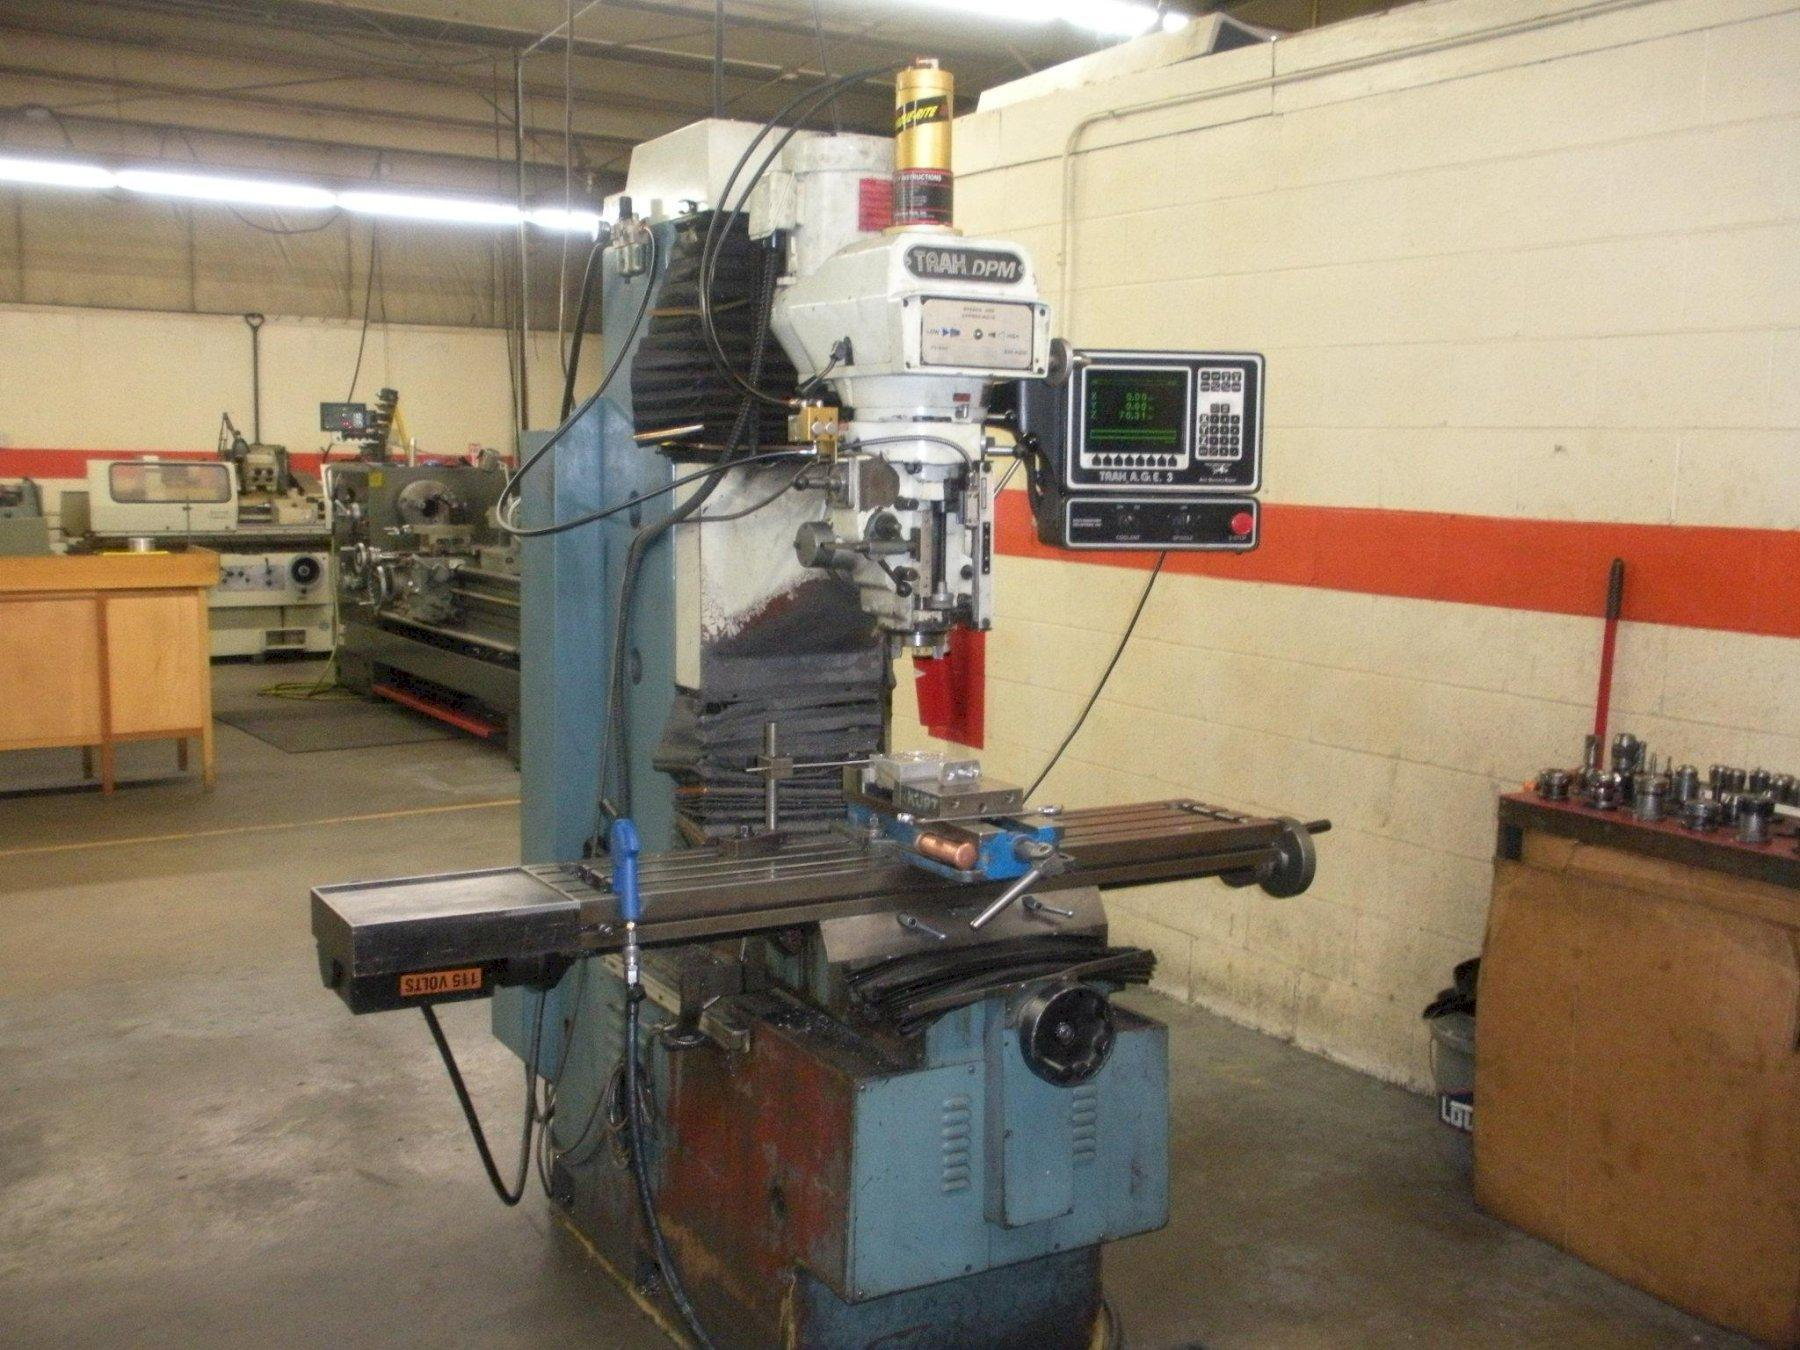 TRAK DPM CNC BED MILL